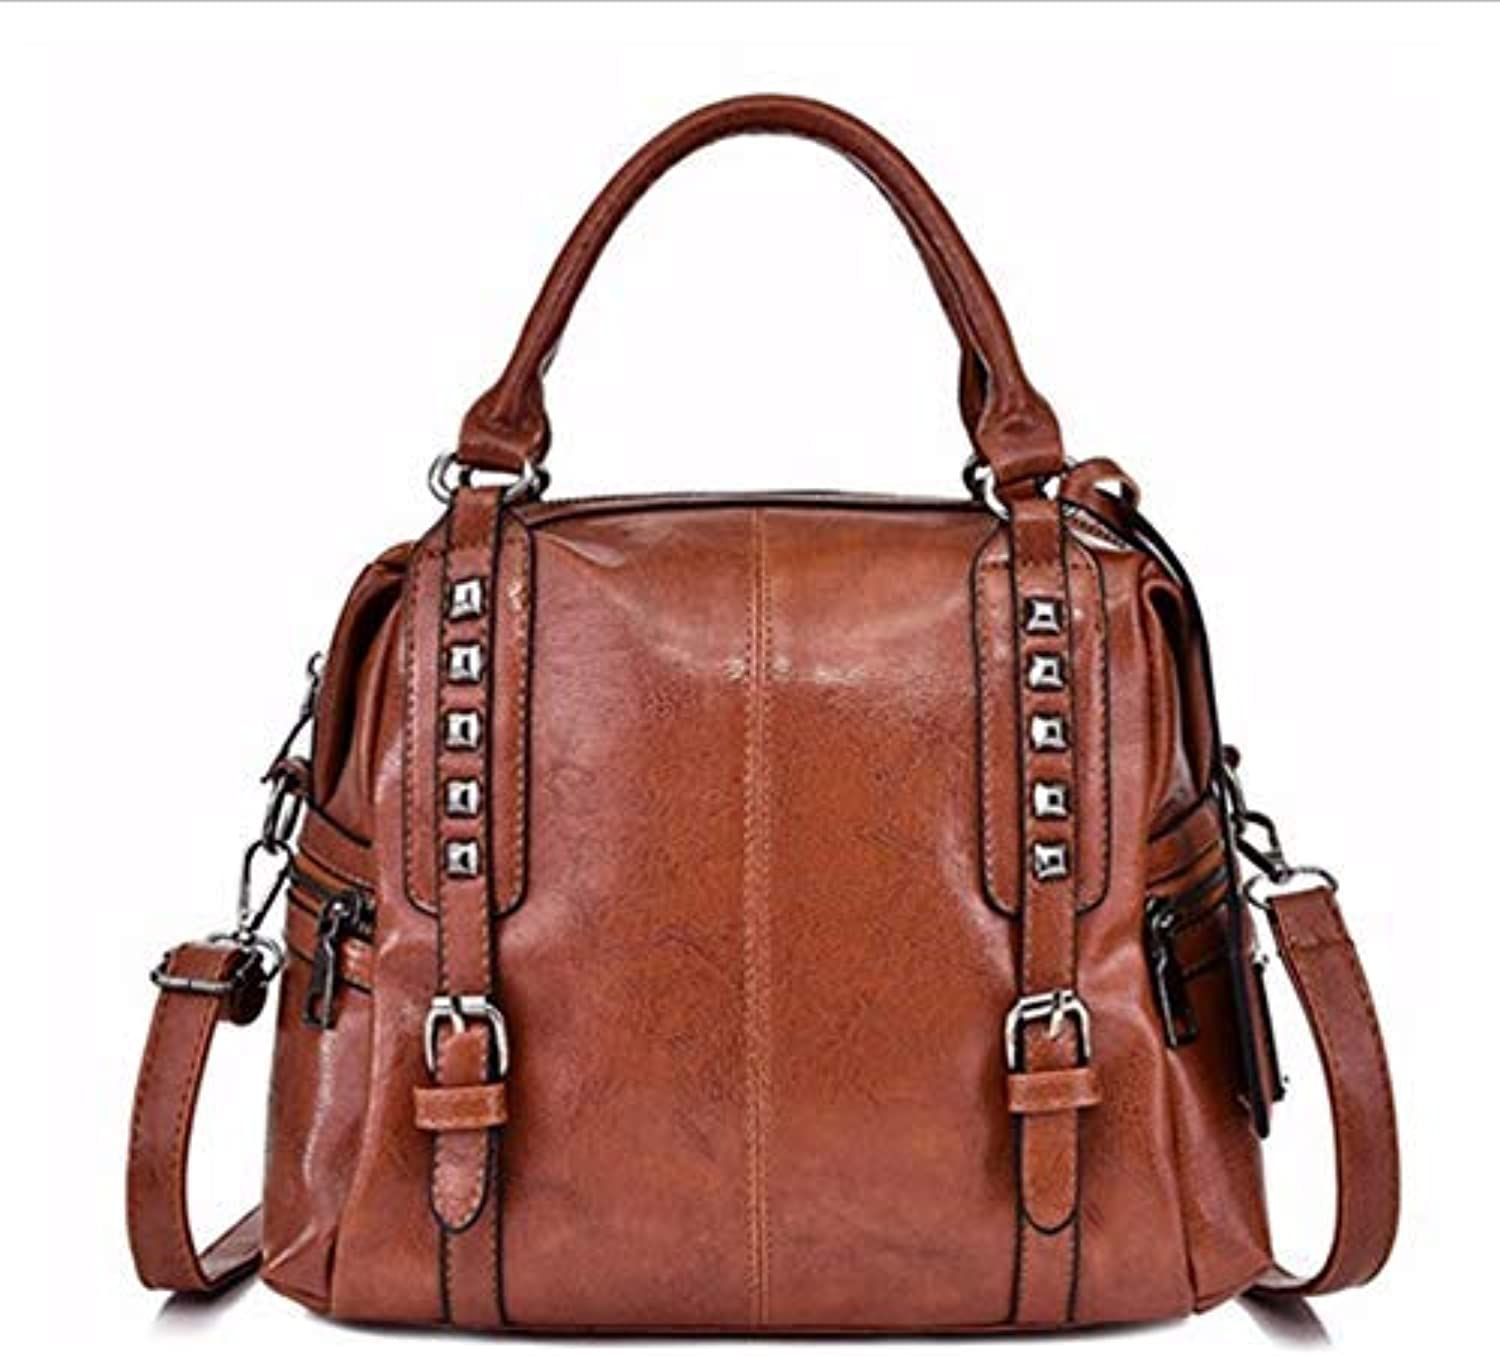 JQSM All-Match High-Capacity Casual Totes Solid color Pu Leather Shoulder Bags for Women Rivet Decor Crossbody Bag for Lady